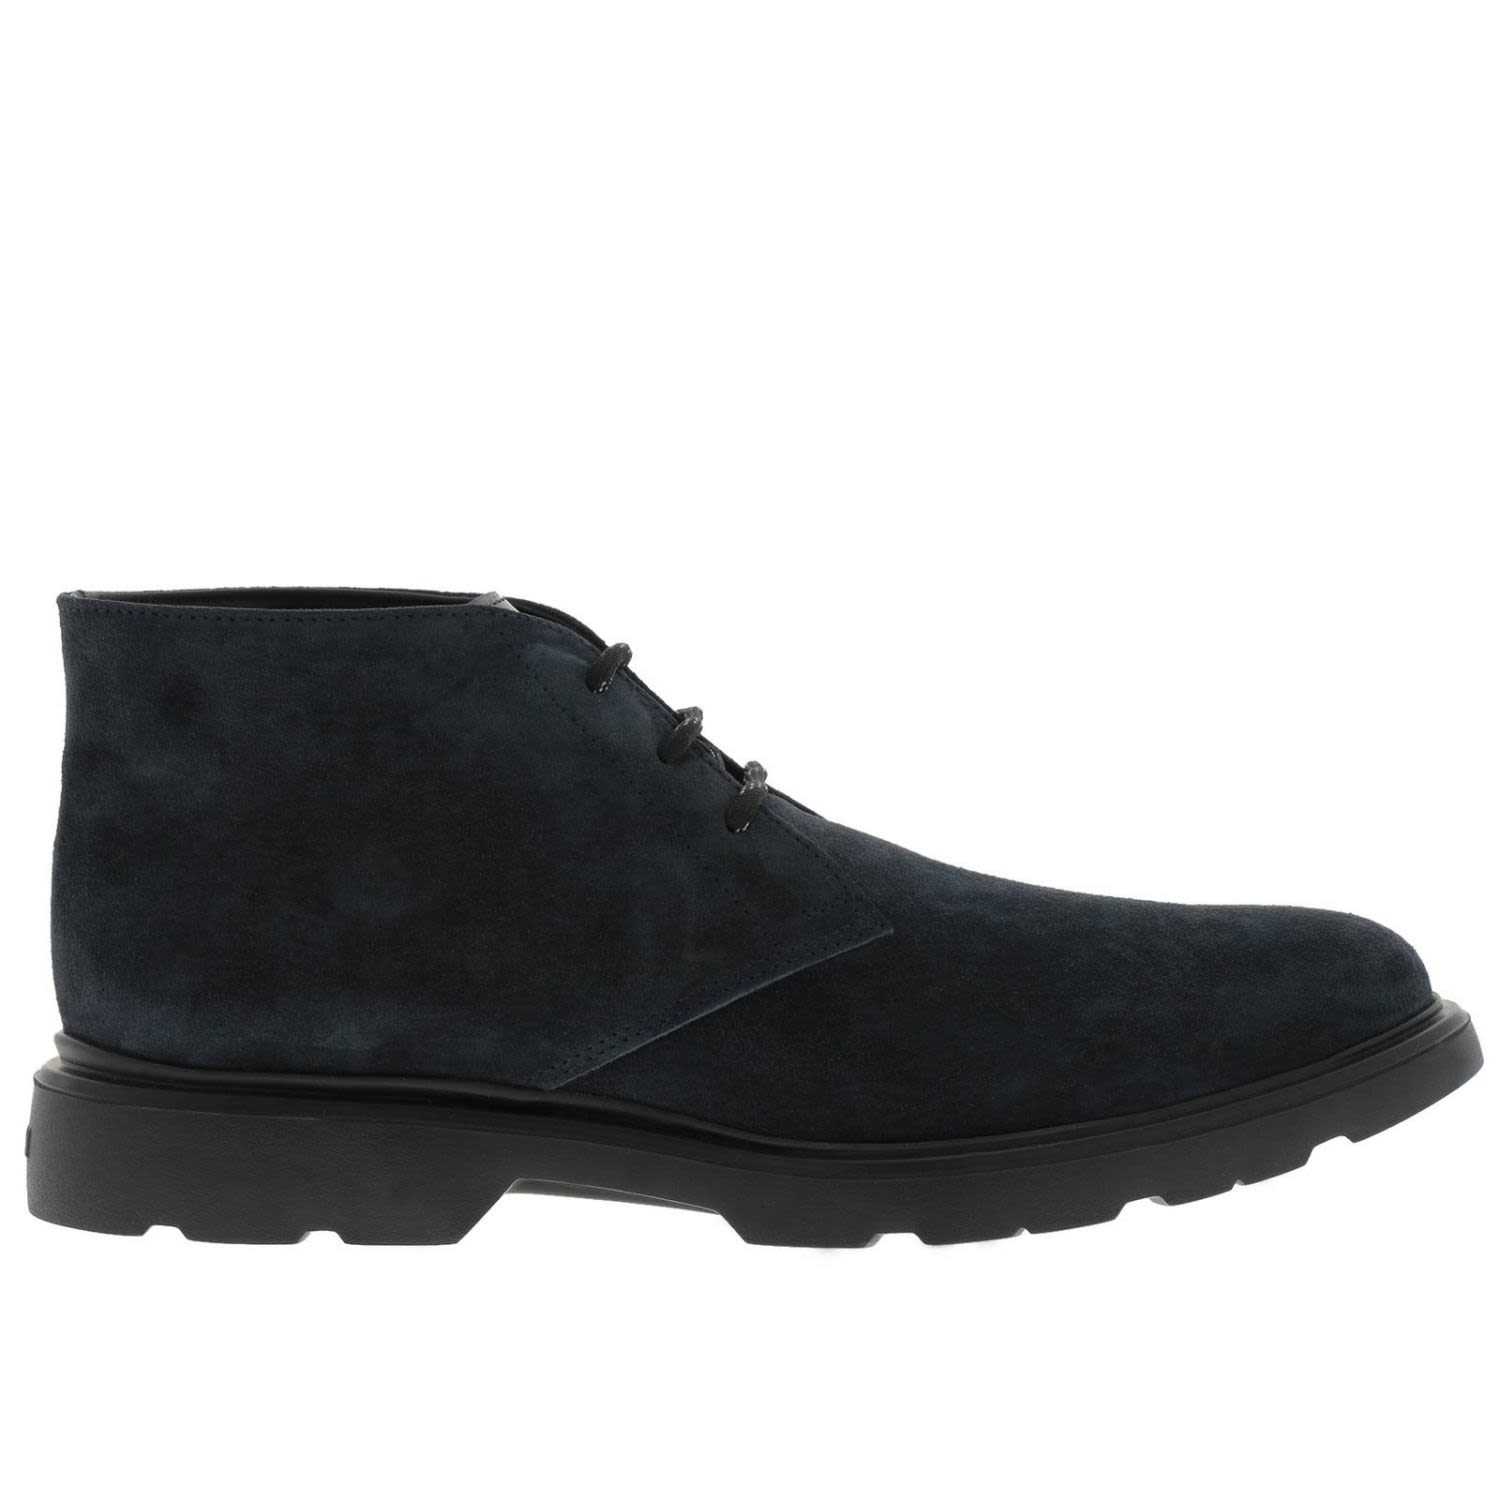 CHUKKA BOOTS SHOES MEN HOGAN